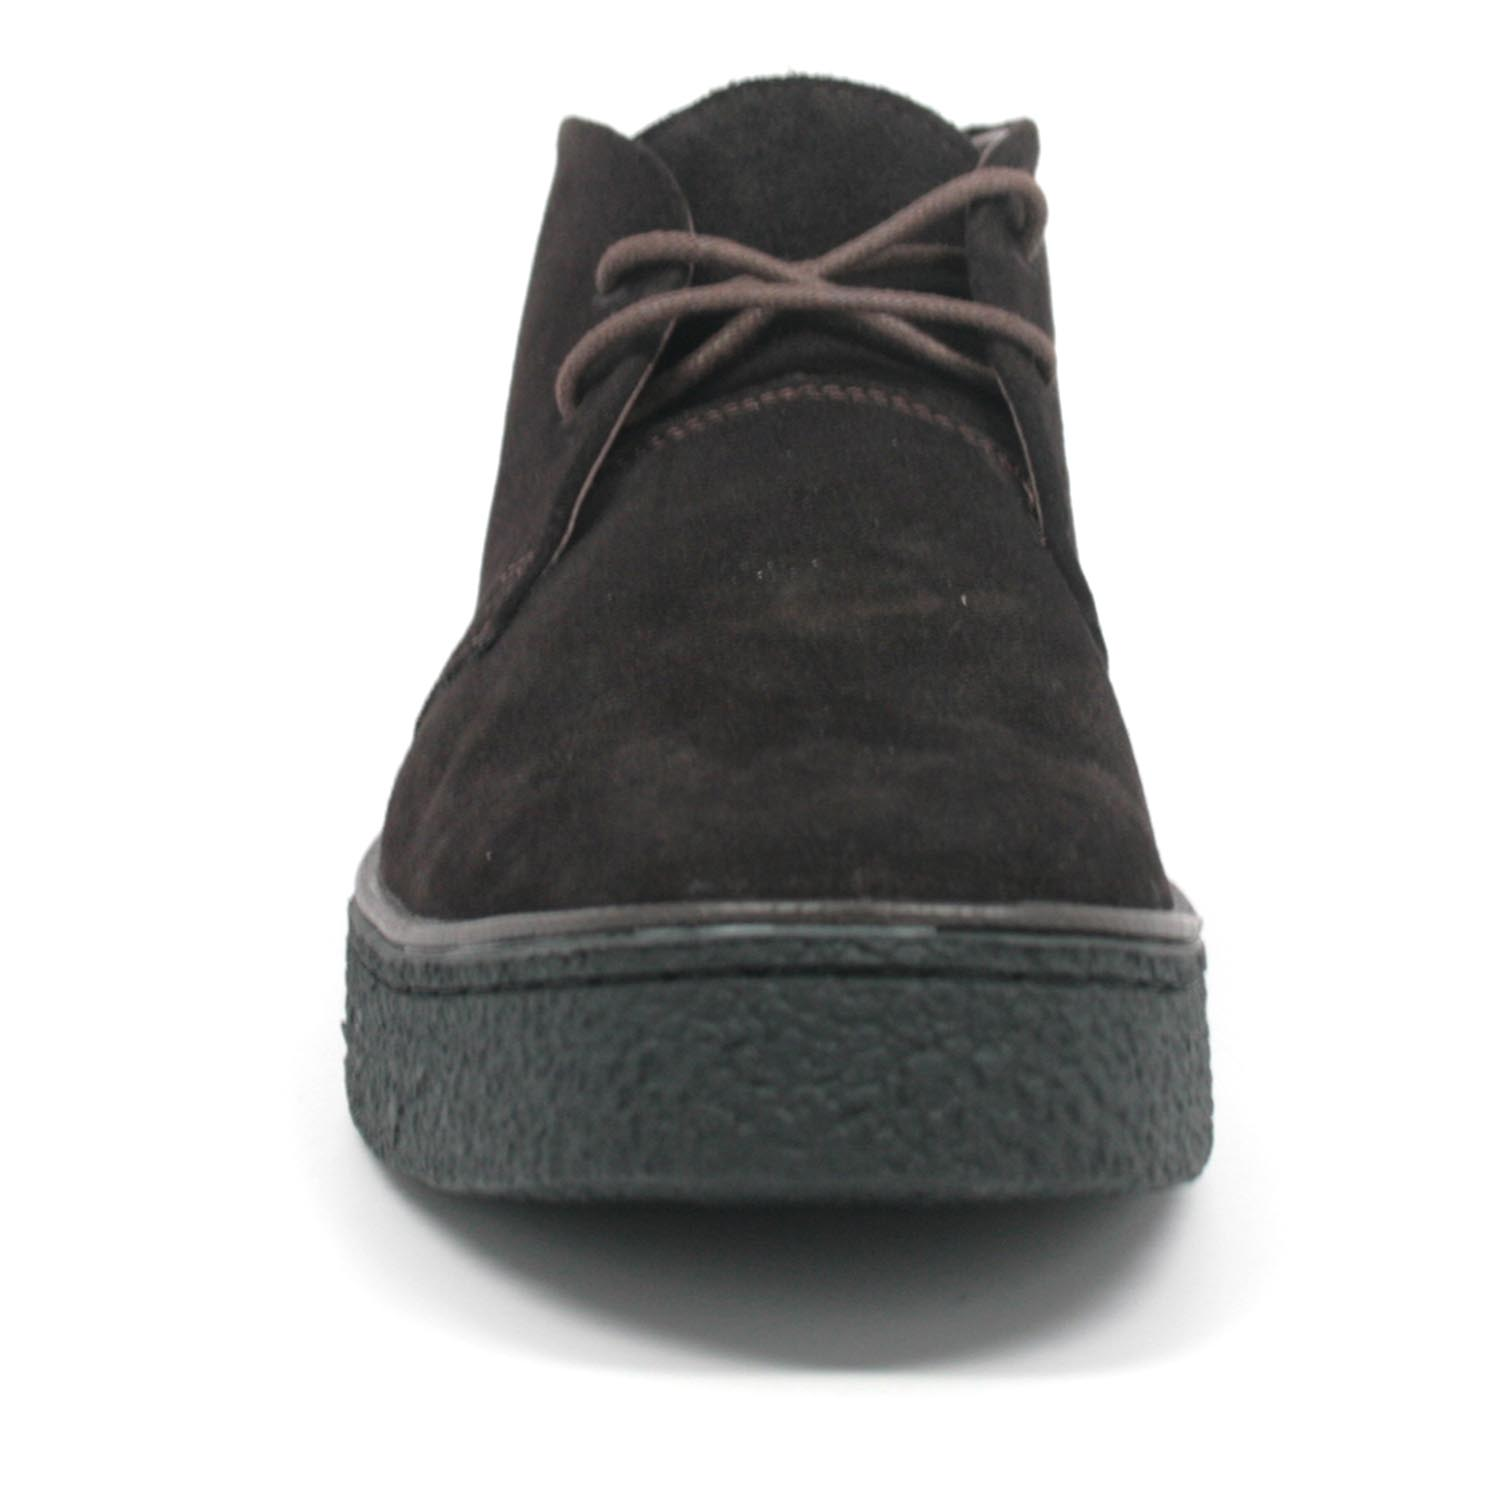 1bf718a41a Classic Playboy Chukka Boot Brown Suede  1226-9  -  99.99   British ...